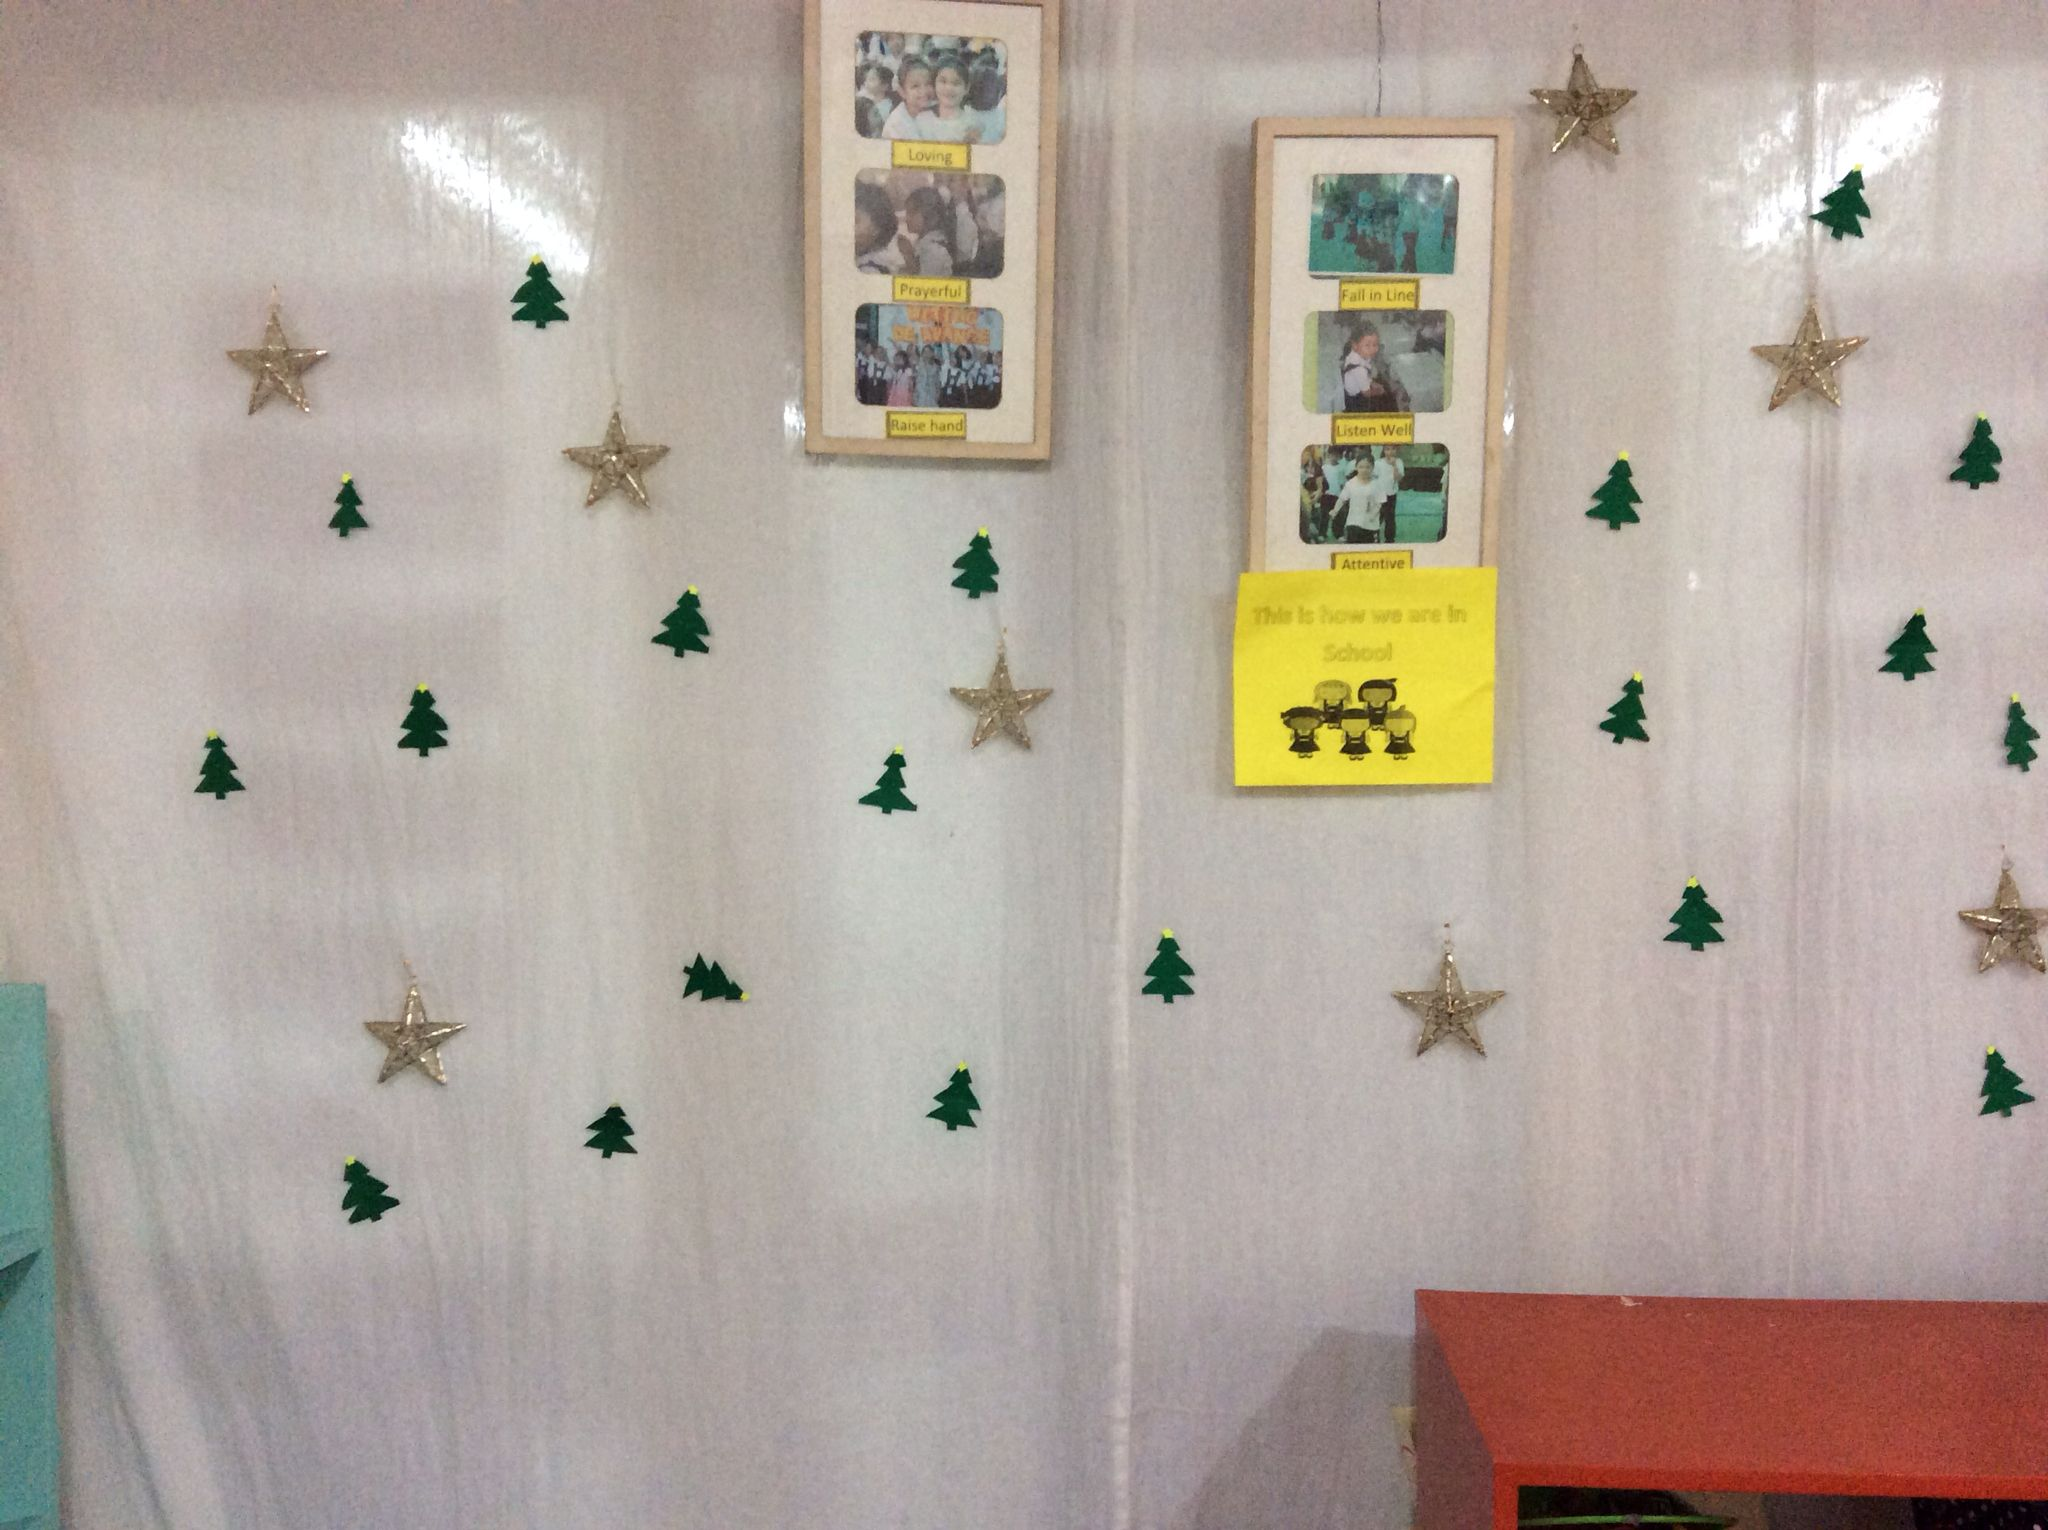 A simple christmas decoration for the classroom. Cut outs and ornaments pinned to the curtain